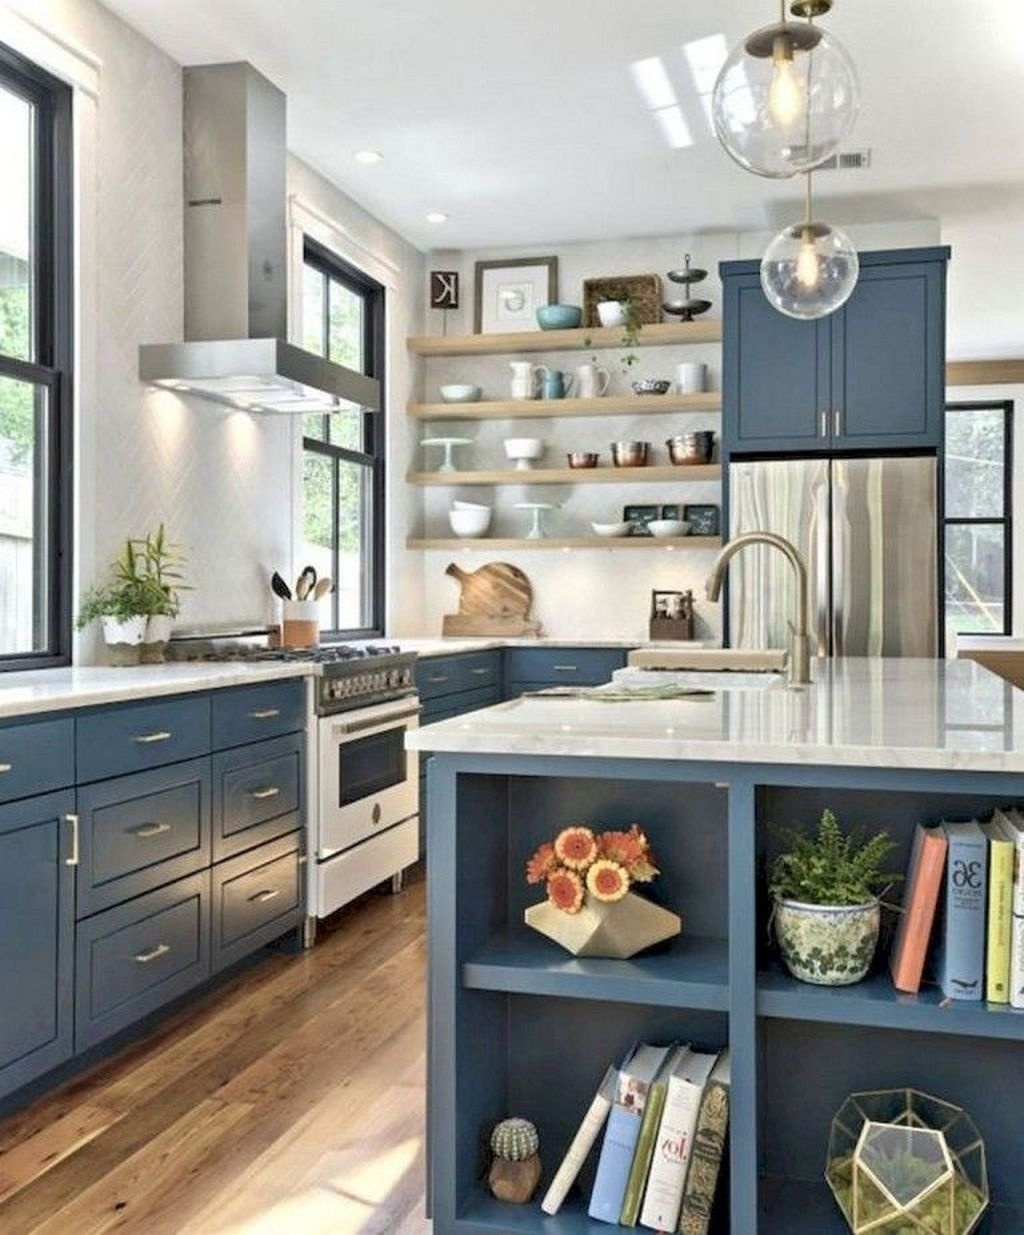 Incredible Farmhouse Kitchen Cabinet Makeover Design Ideas33